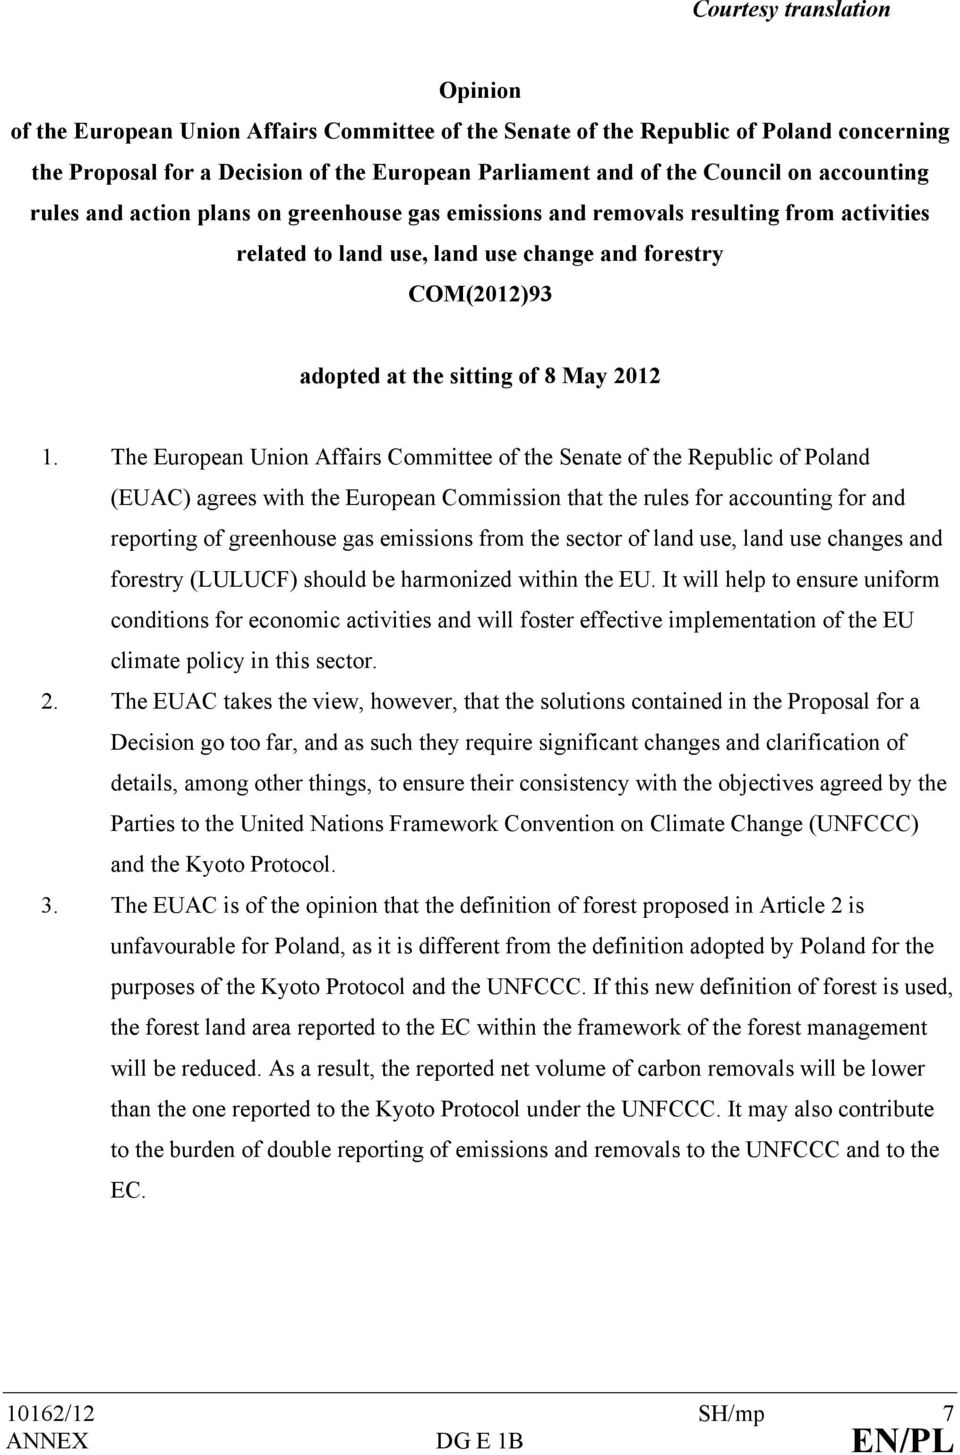 1. The European Union Affairs Committee of the Senate of the Republic of Poland (EUAC) agrees with the European Commission that the rules for accounting for and reporting of greenhouse gas emissions